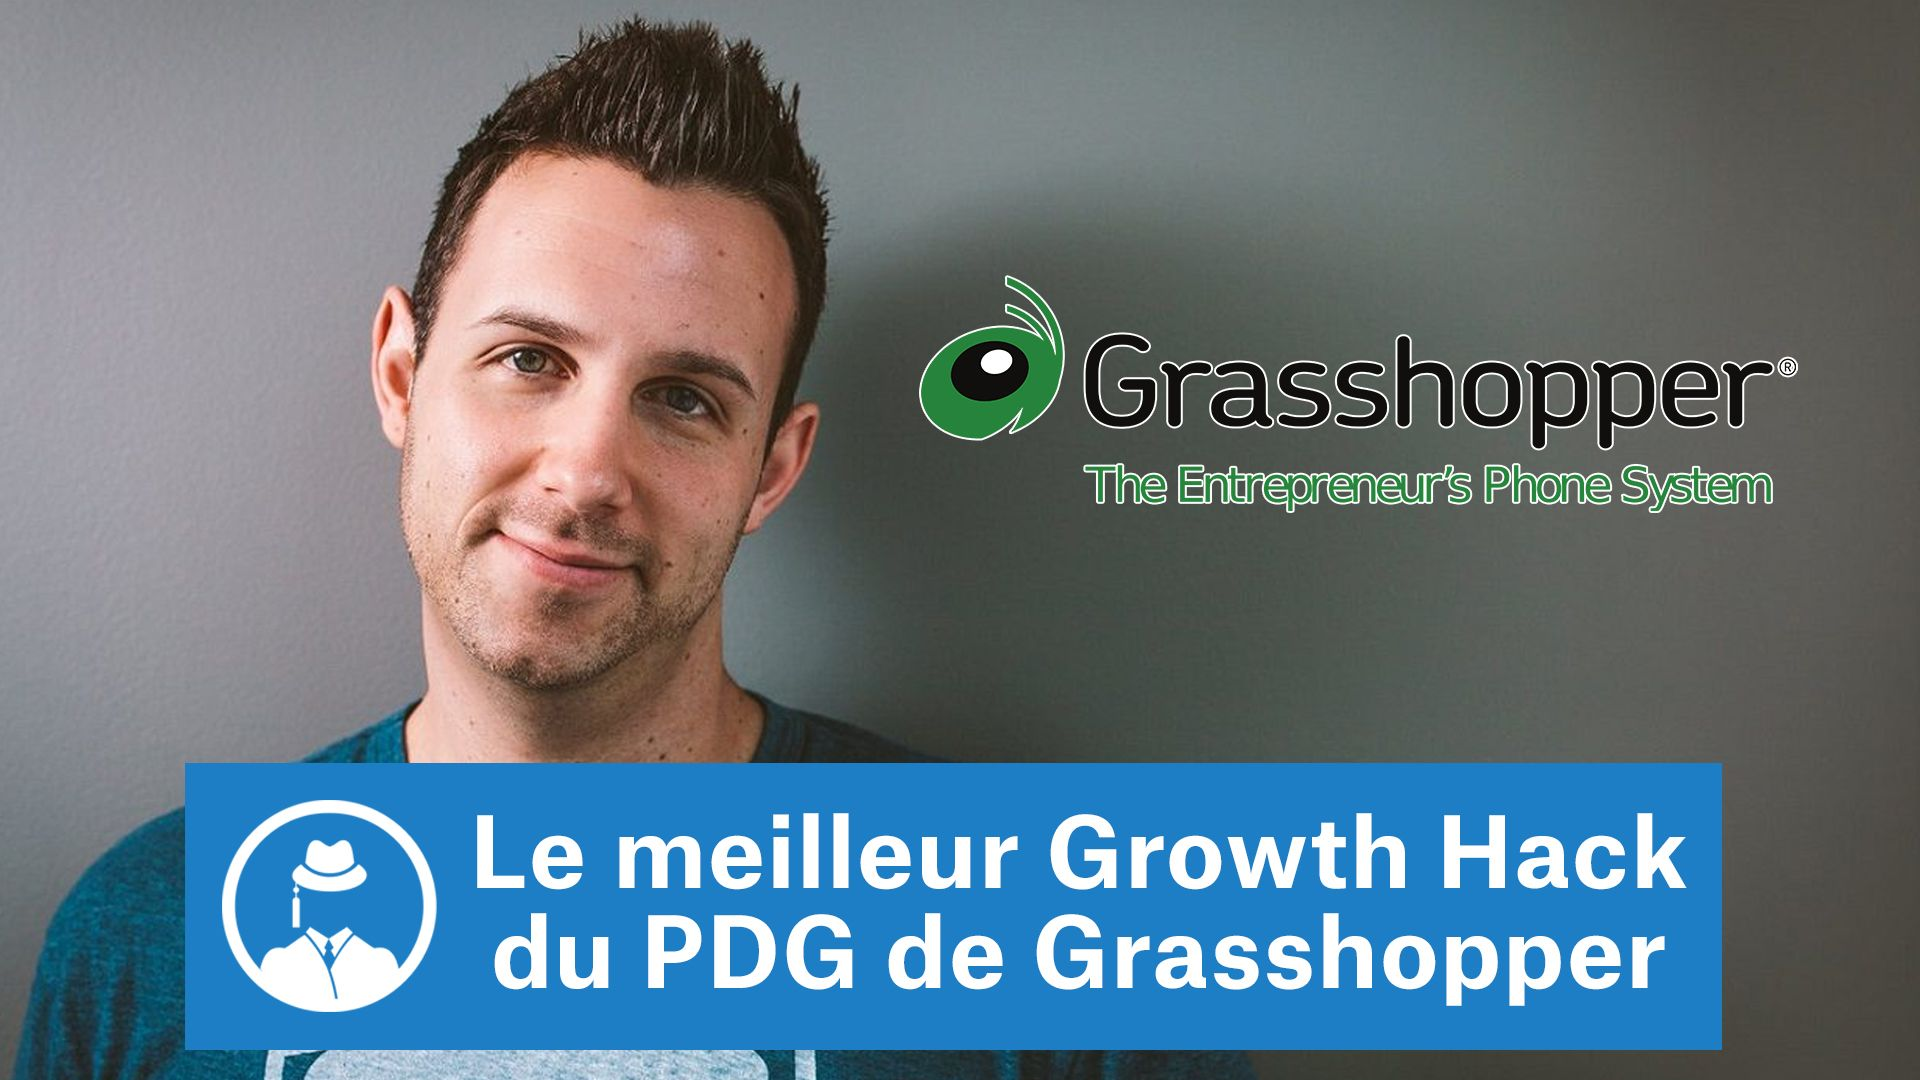 Le meilleur Growth Hack du PDG de Grasshopper #GrowthHacking #WebMarketing #FormationGrowthHacking #CentreDeFormationFrance #TunnelAARRR #AARRR #SocialMedia #CommunityManagement #SEO #MarketingDigital #SiteWeb